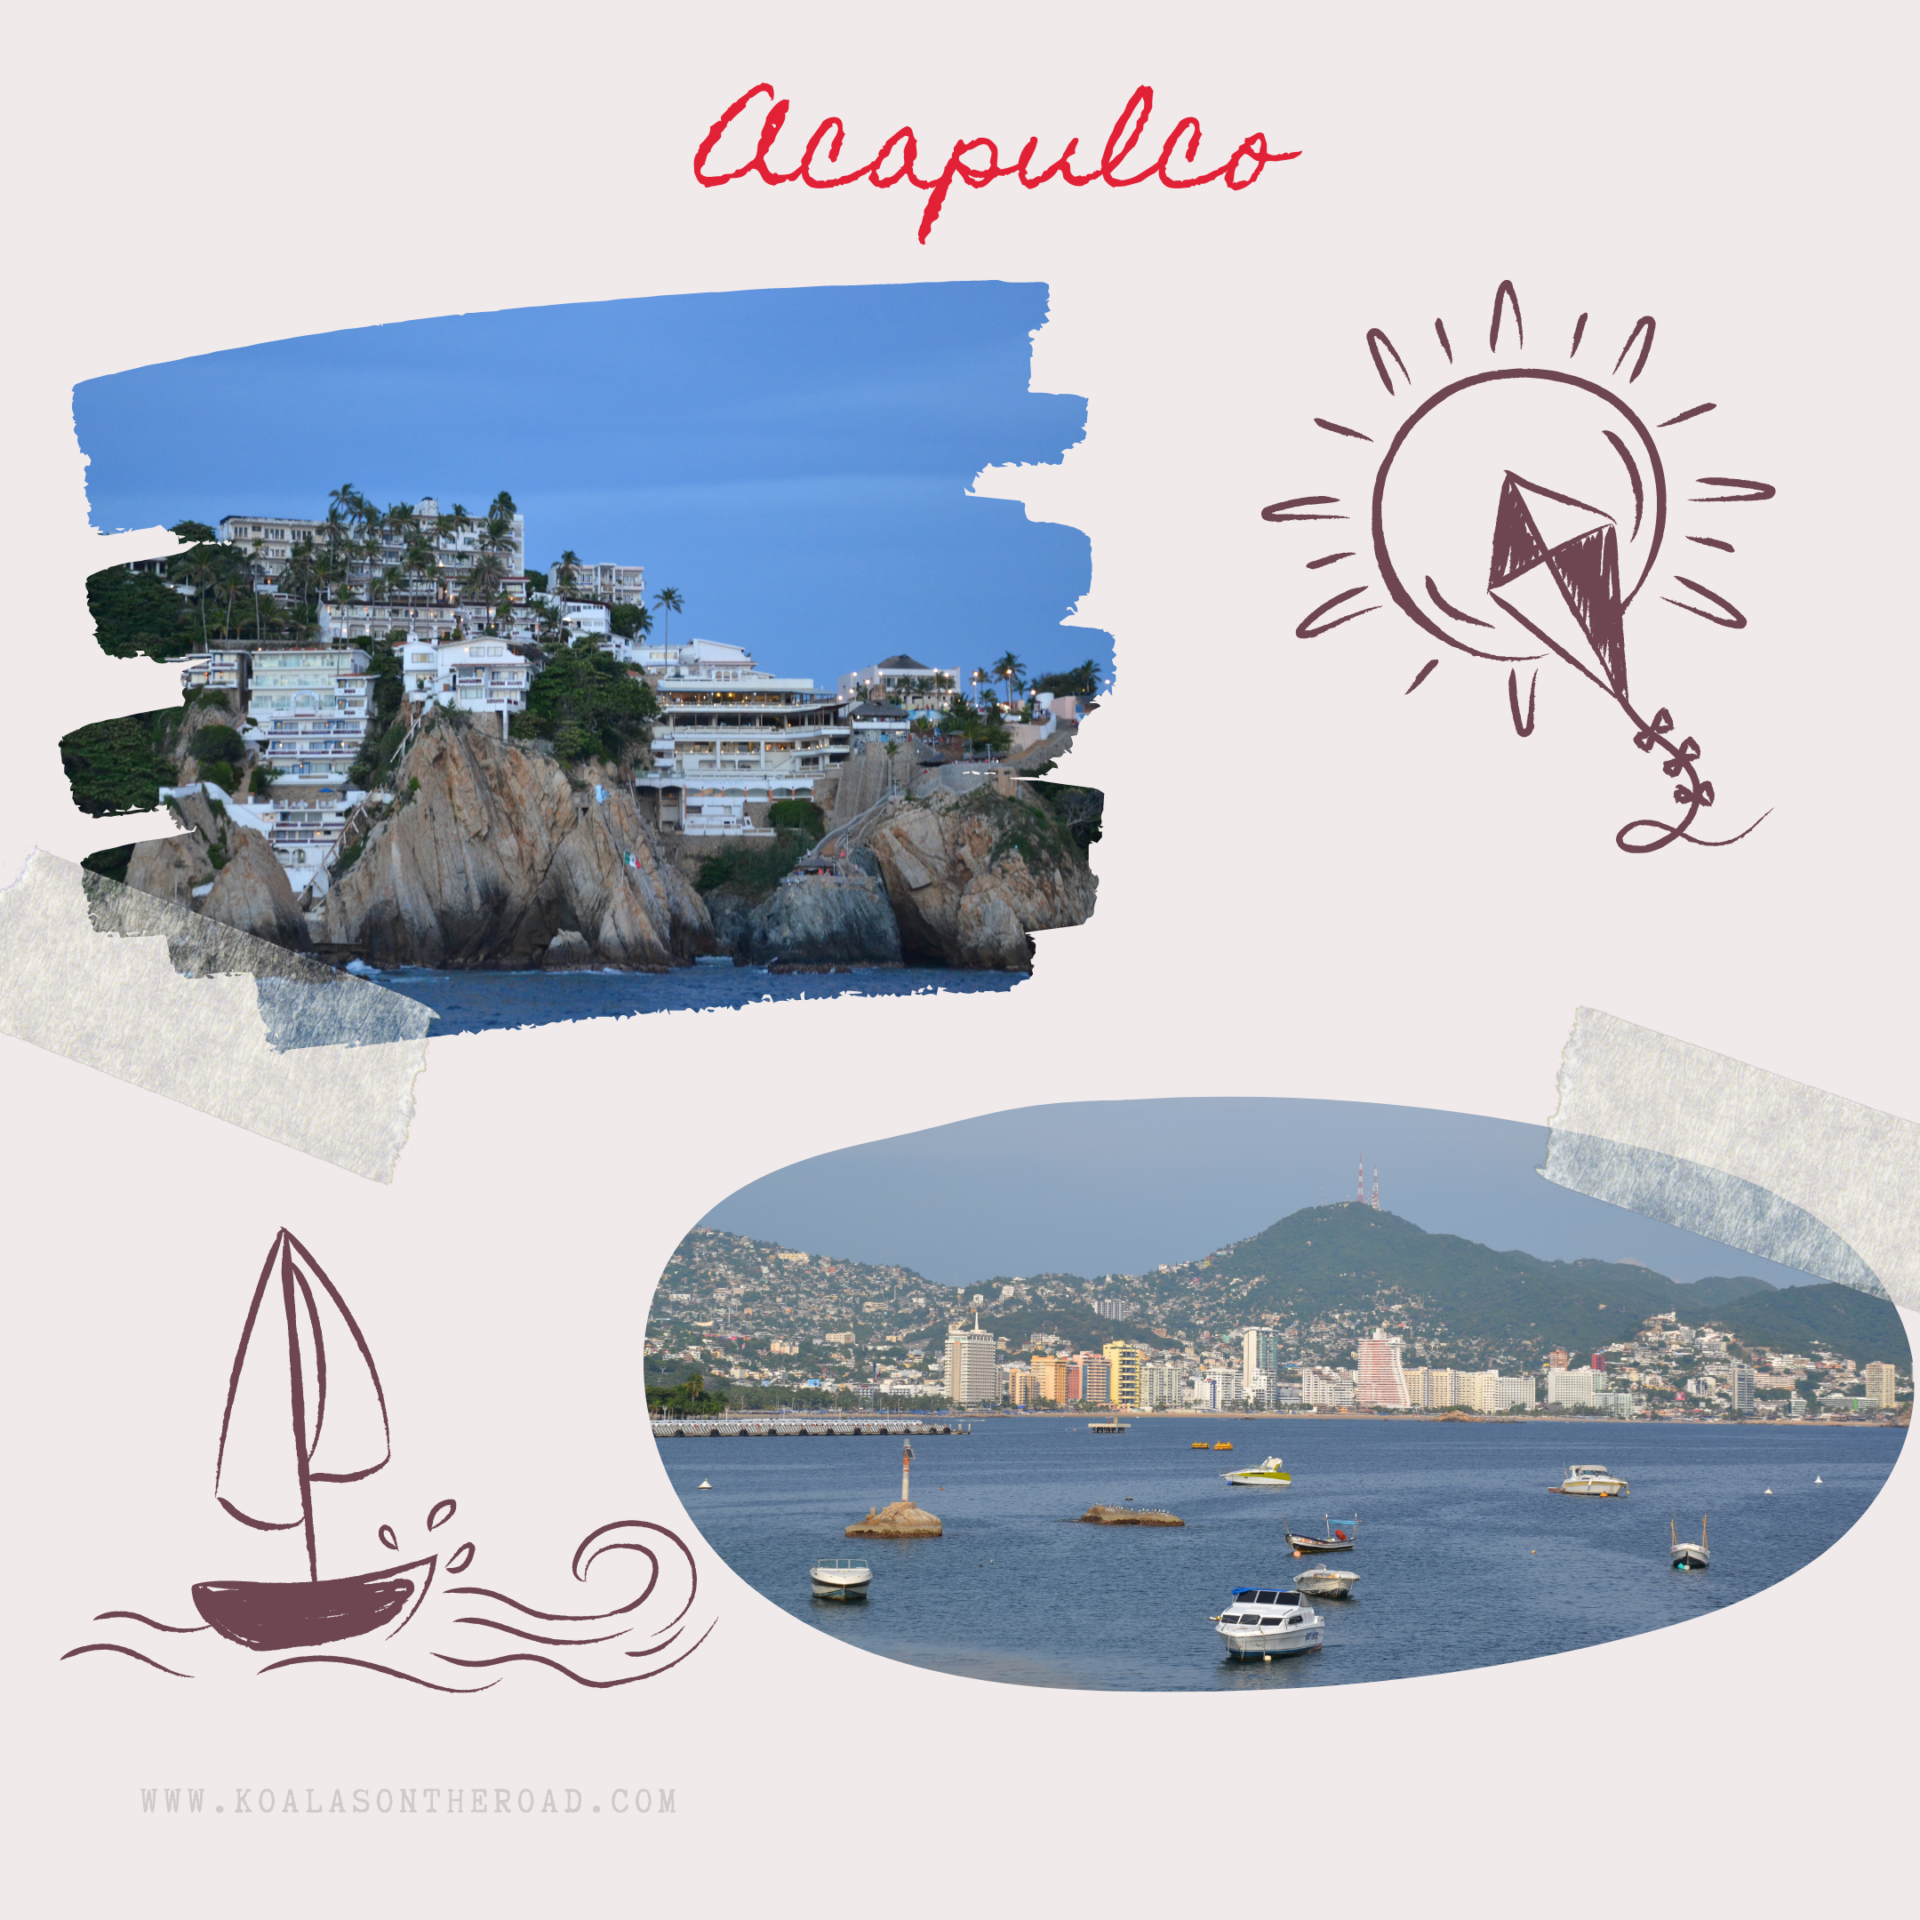 Discovering Mexico - what to visit in Puebla, Morelos and Guerrero states - koalas on the road - Acapulco